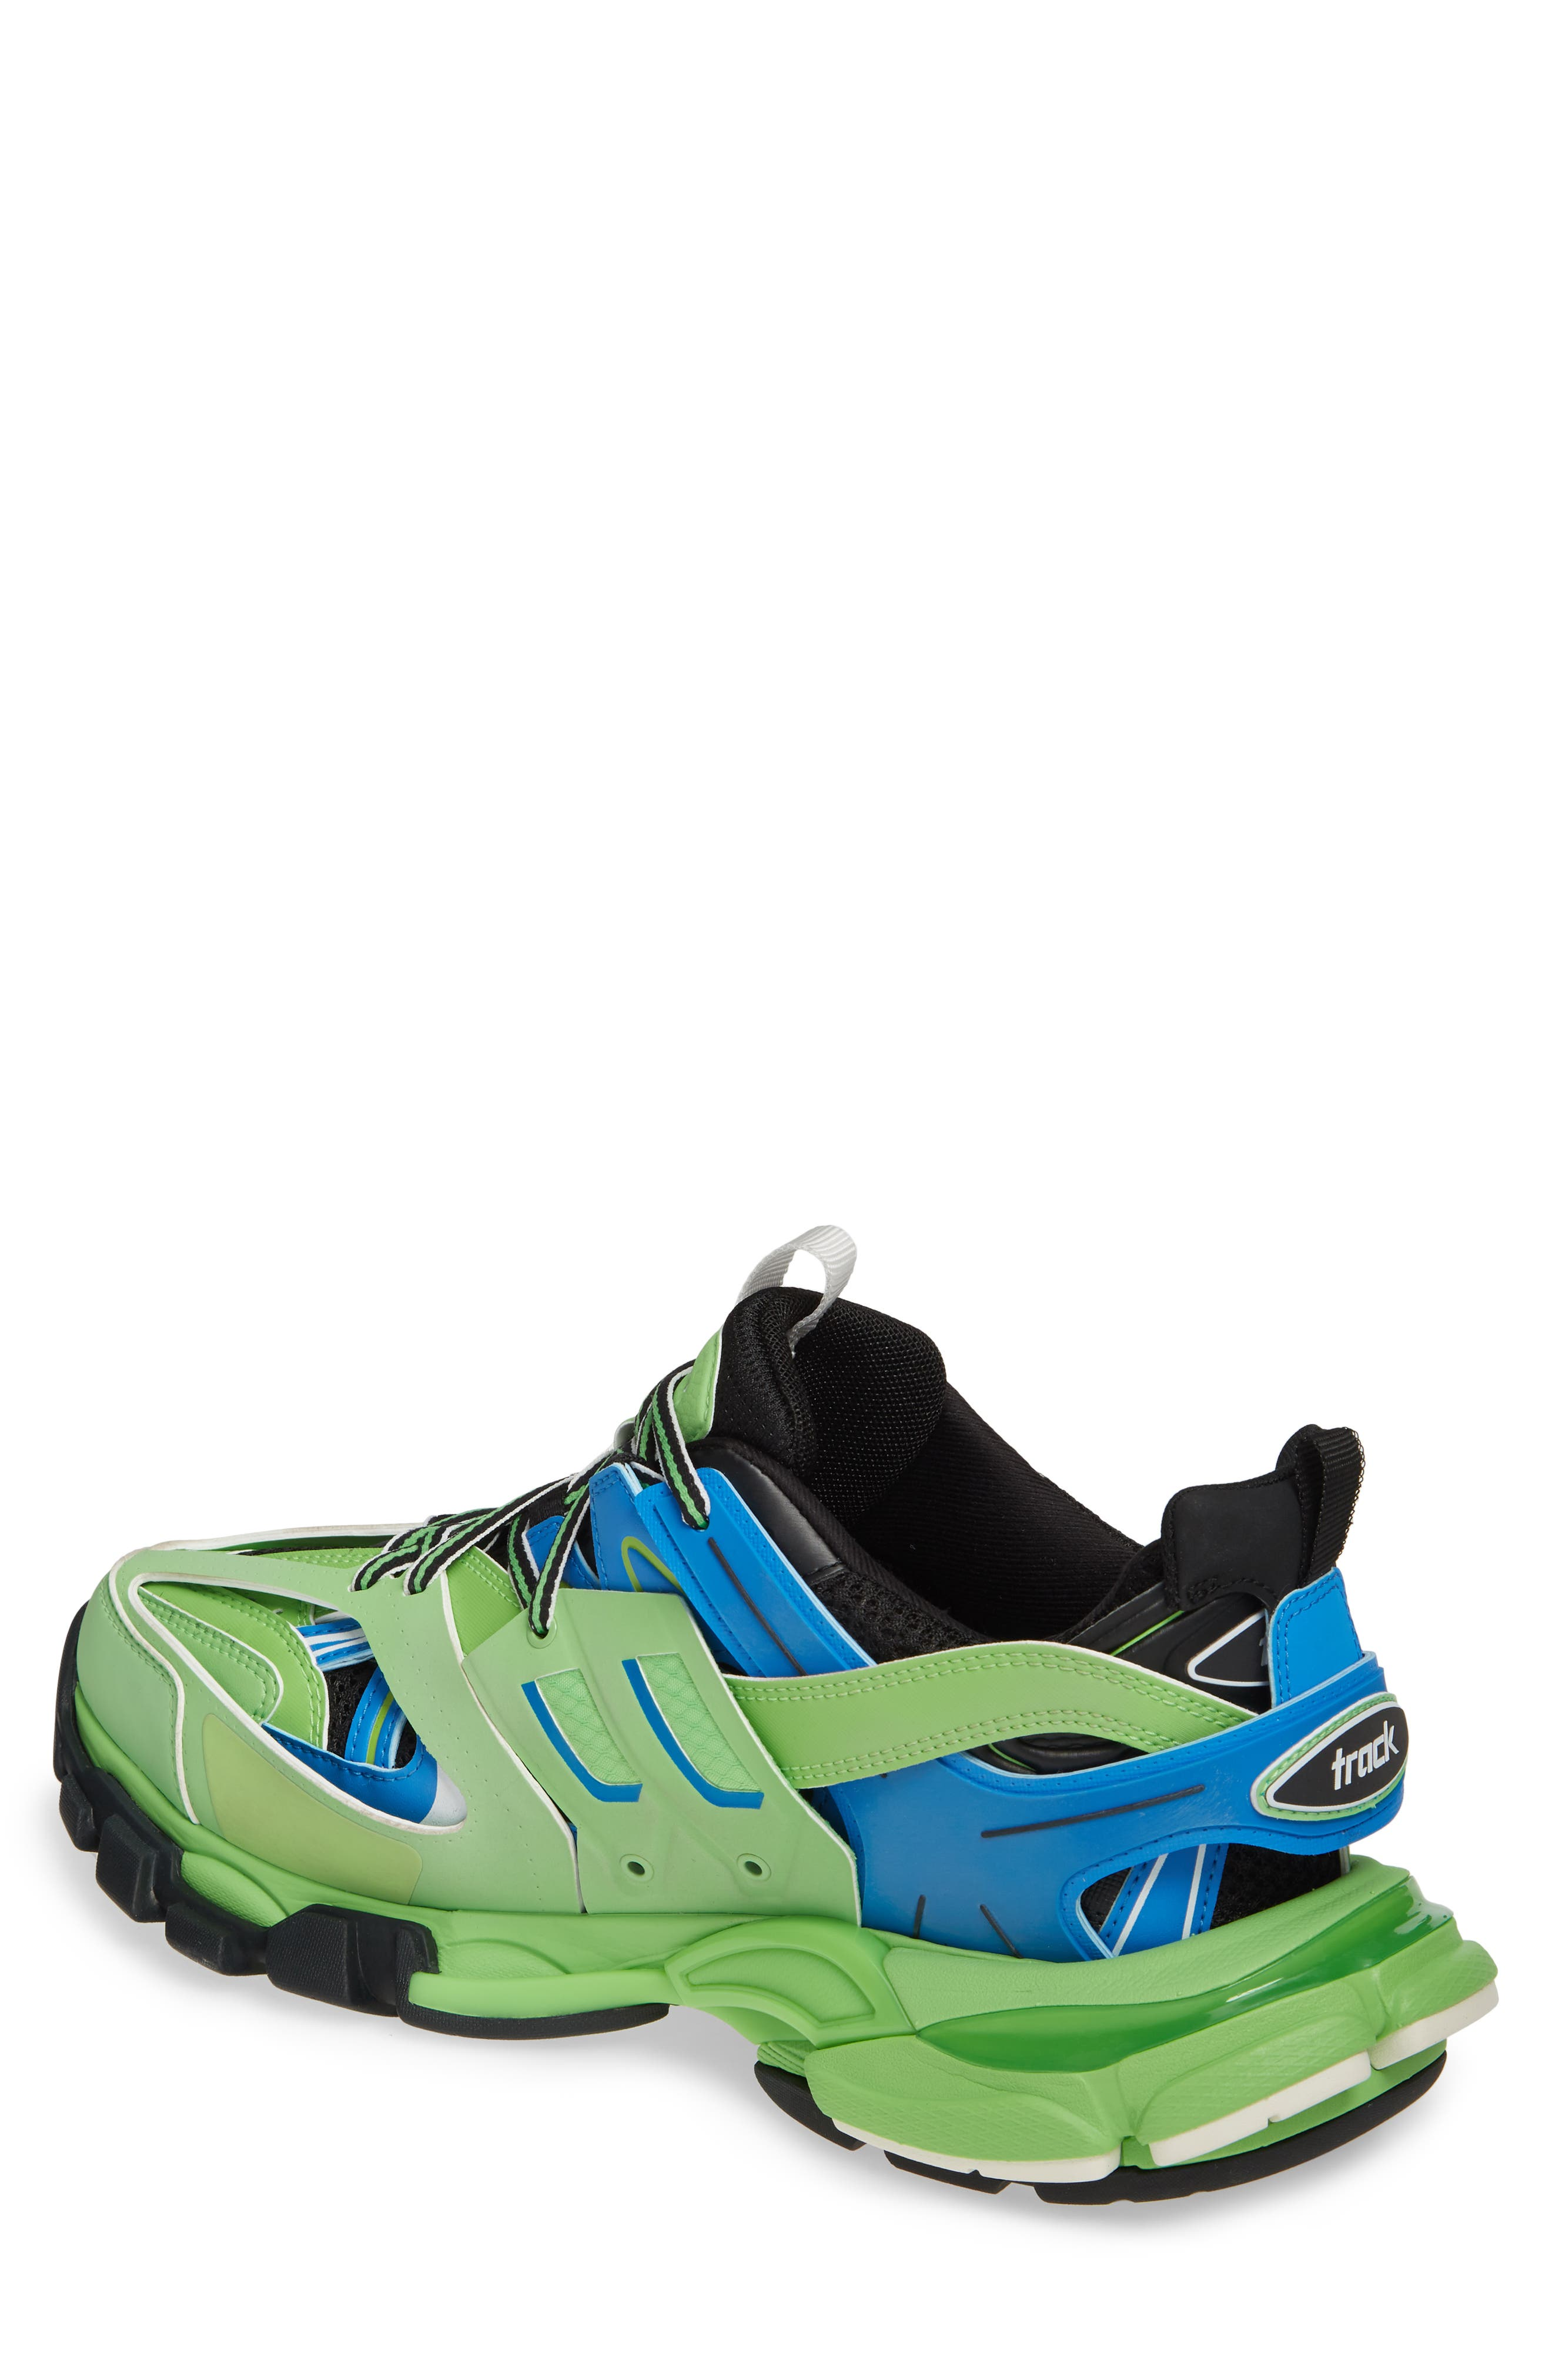 BALENCIAGA, Track Sneaker, Alternate thumbnail 2, color, 4078 BLUE/ GREEN